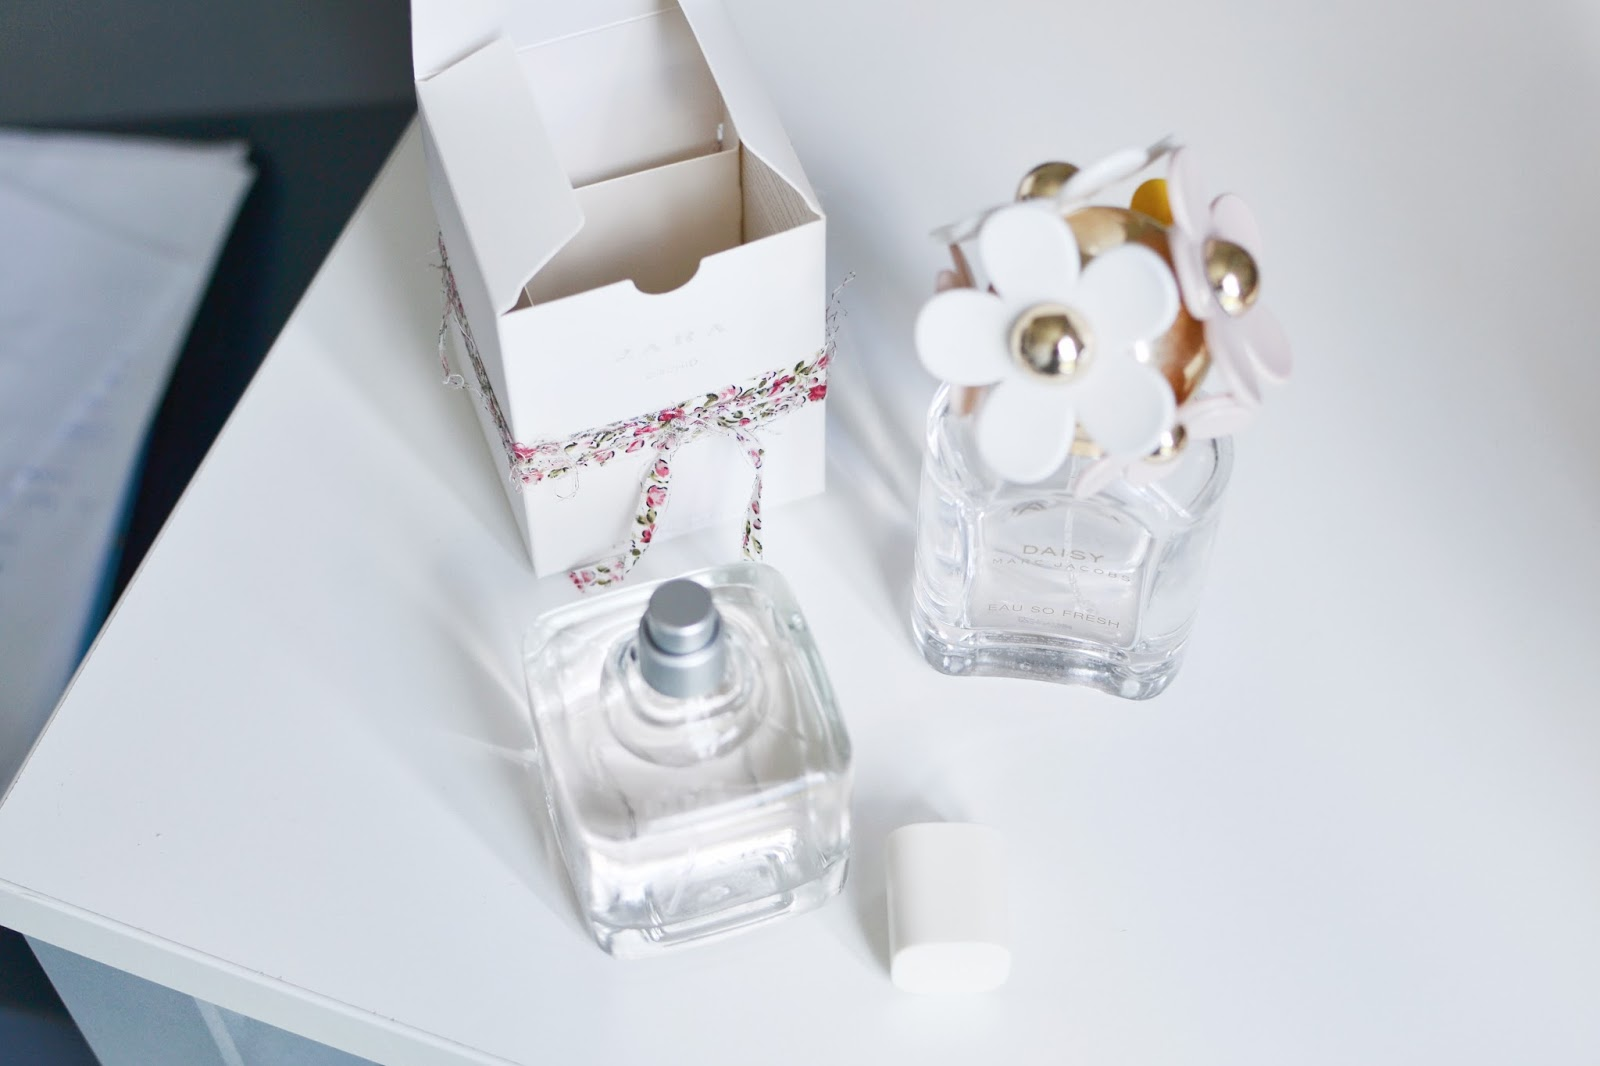 perfume review zara orchid perfume daisy eau so fresh